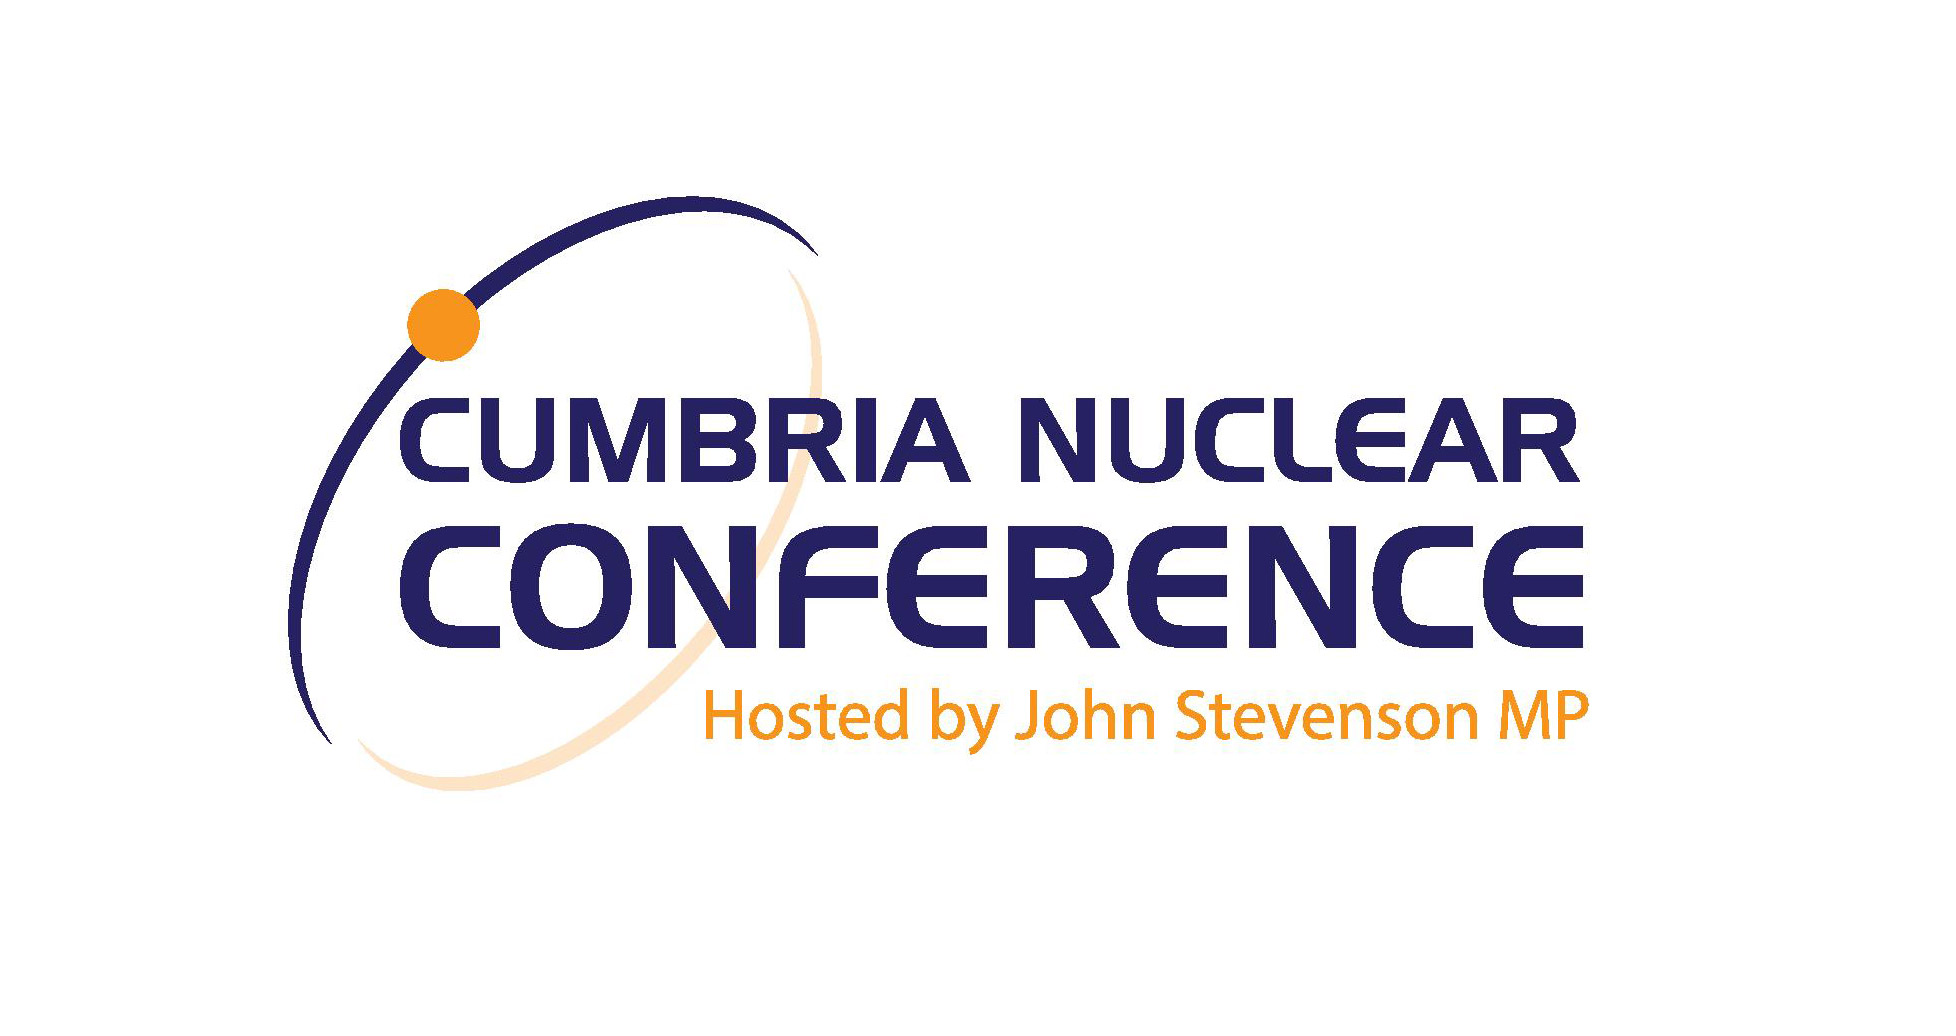 Cumbria Nuclear Conference Logo